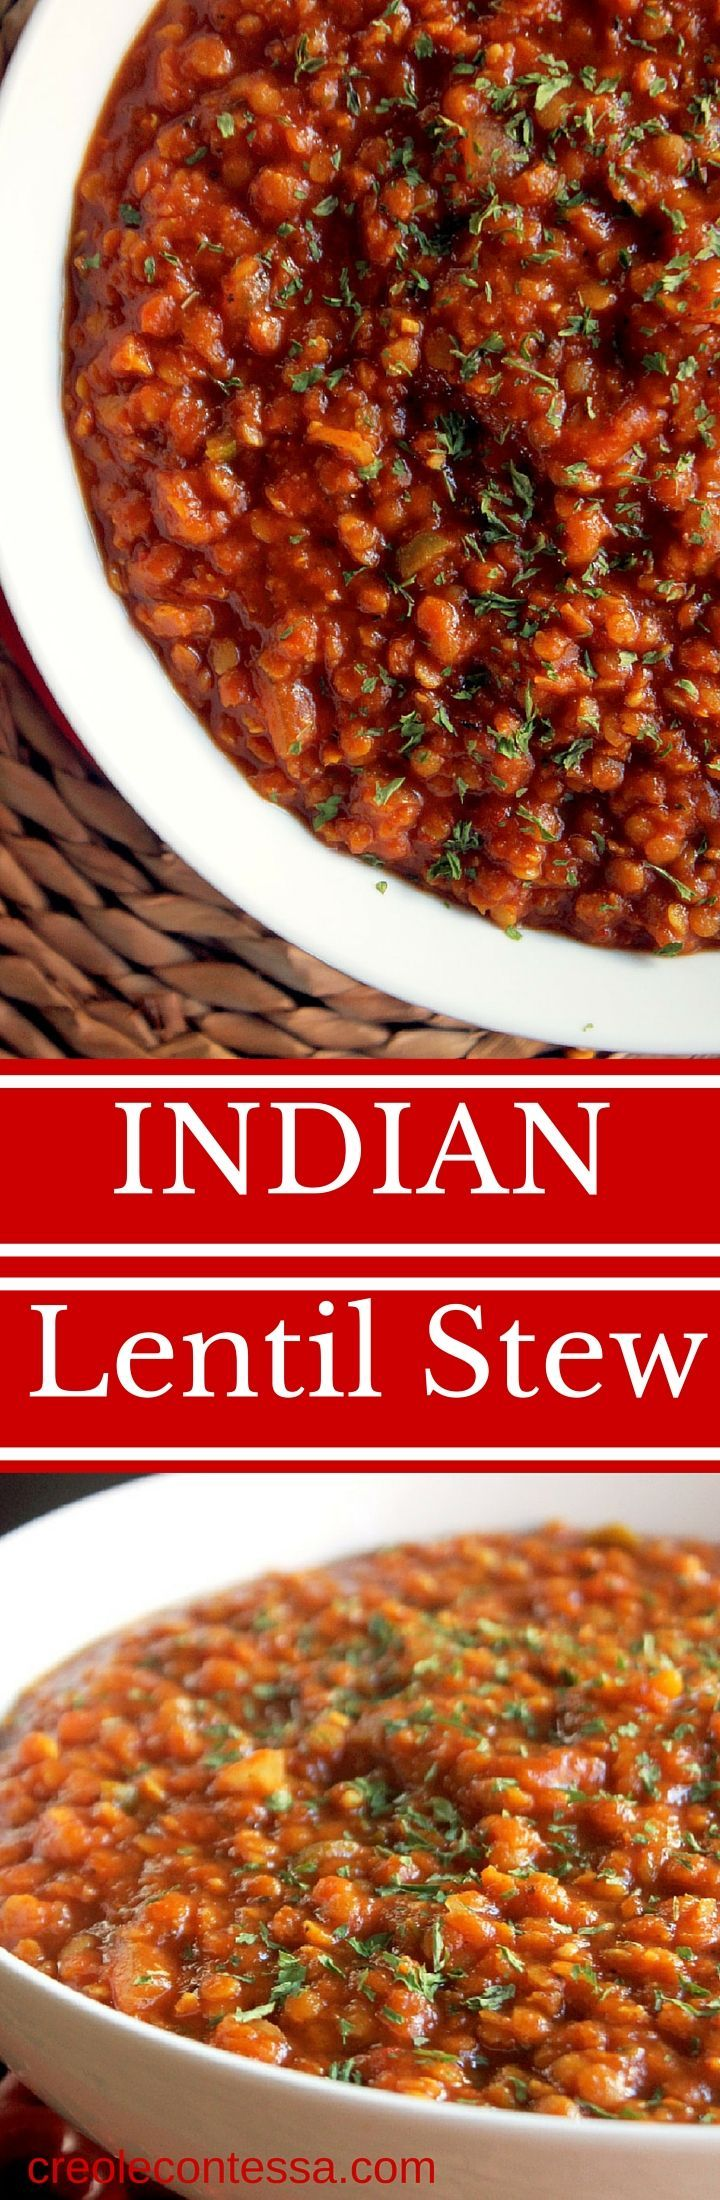 Slow Cooker Indian Lentil Stew-Creole Contessa http://creolecontessa.com/2015/09/slow-cooker-indian-lentil-stew/ http://samscutlerydepot.com/product/sakon-shiraume-15-cm-deba-resin-handle/